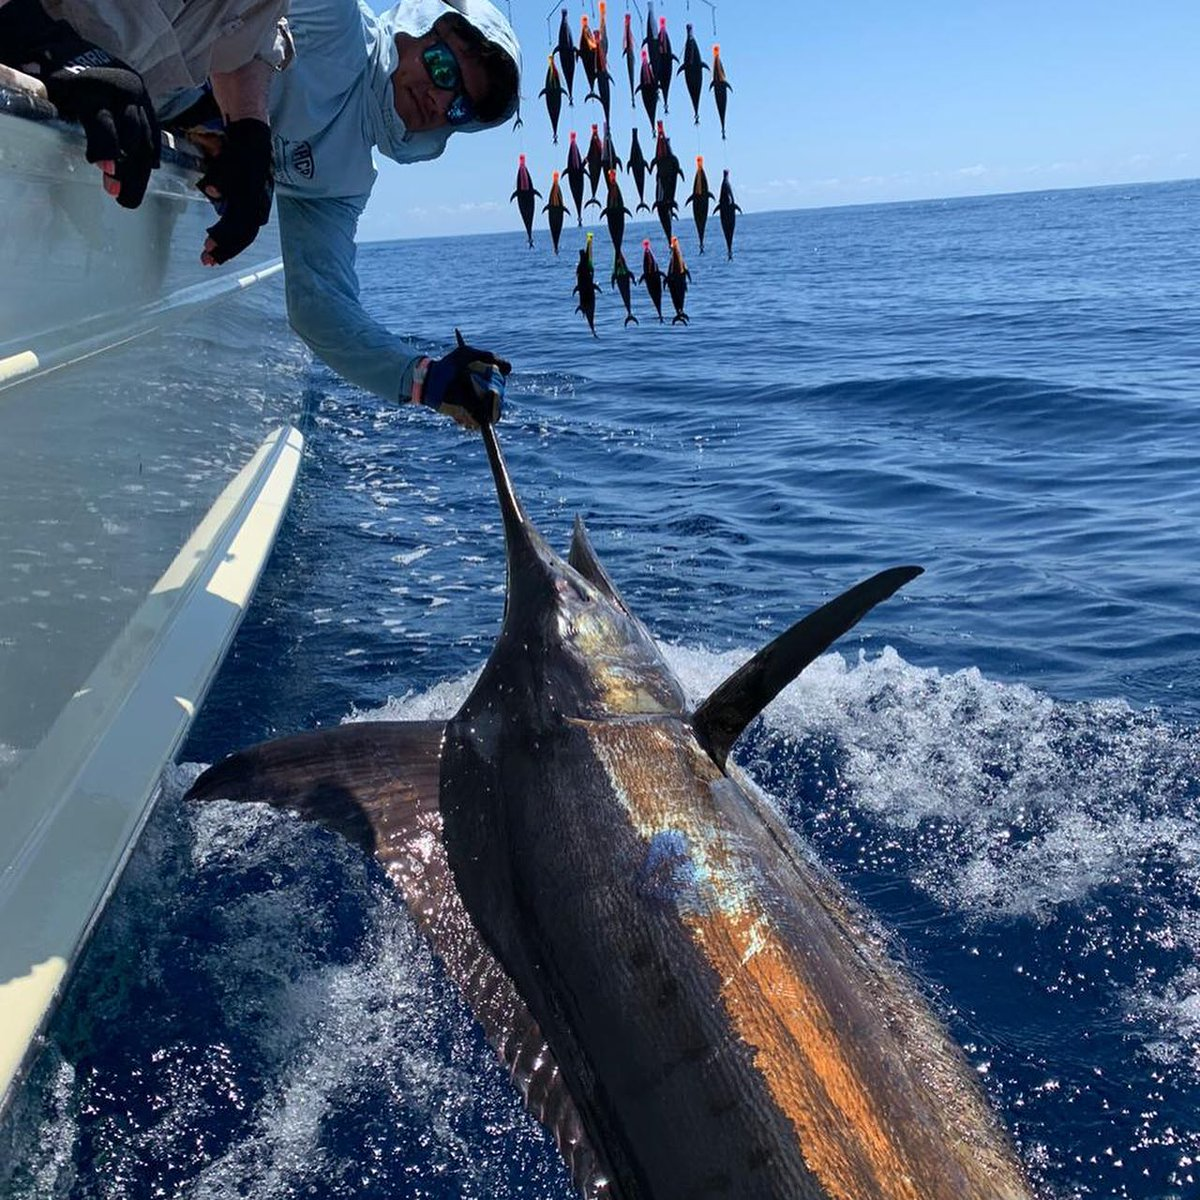 Los Suenos, CR - Geaux Fly released a Blue Marlin and 2 Sailfish.